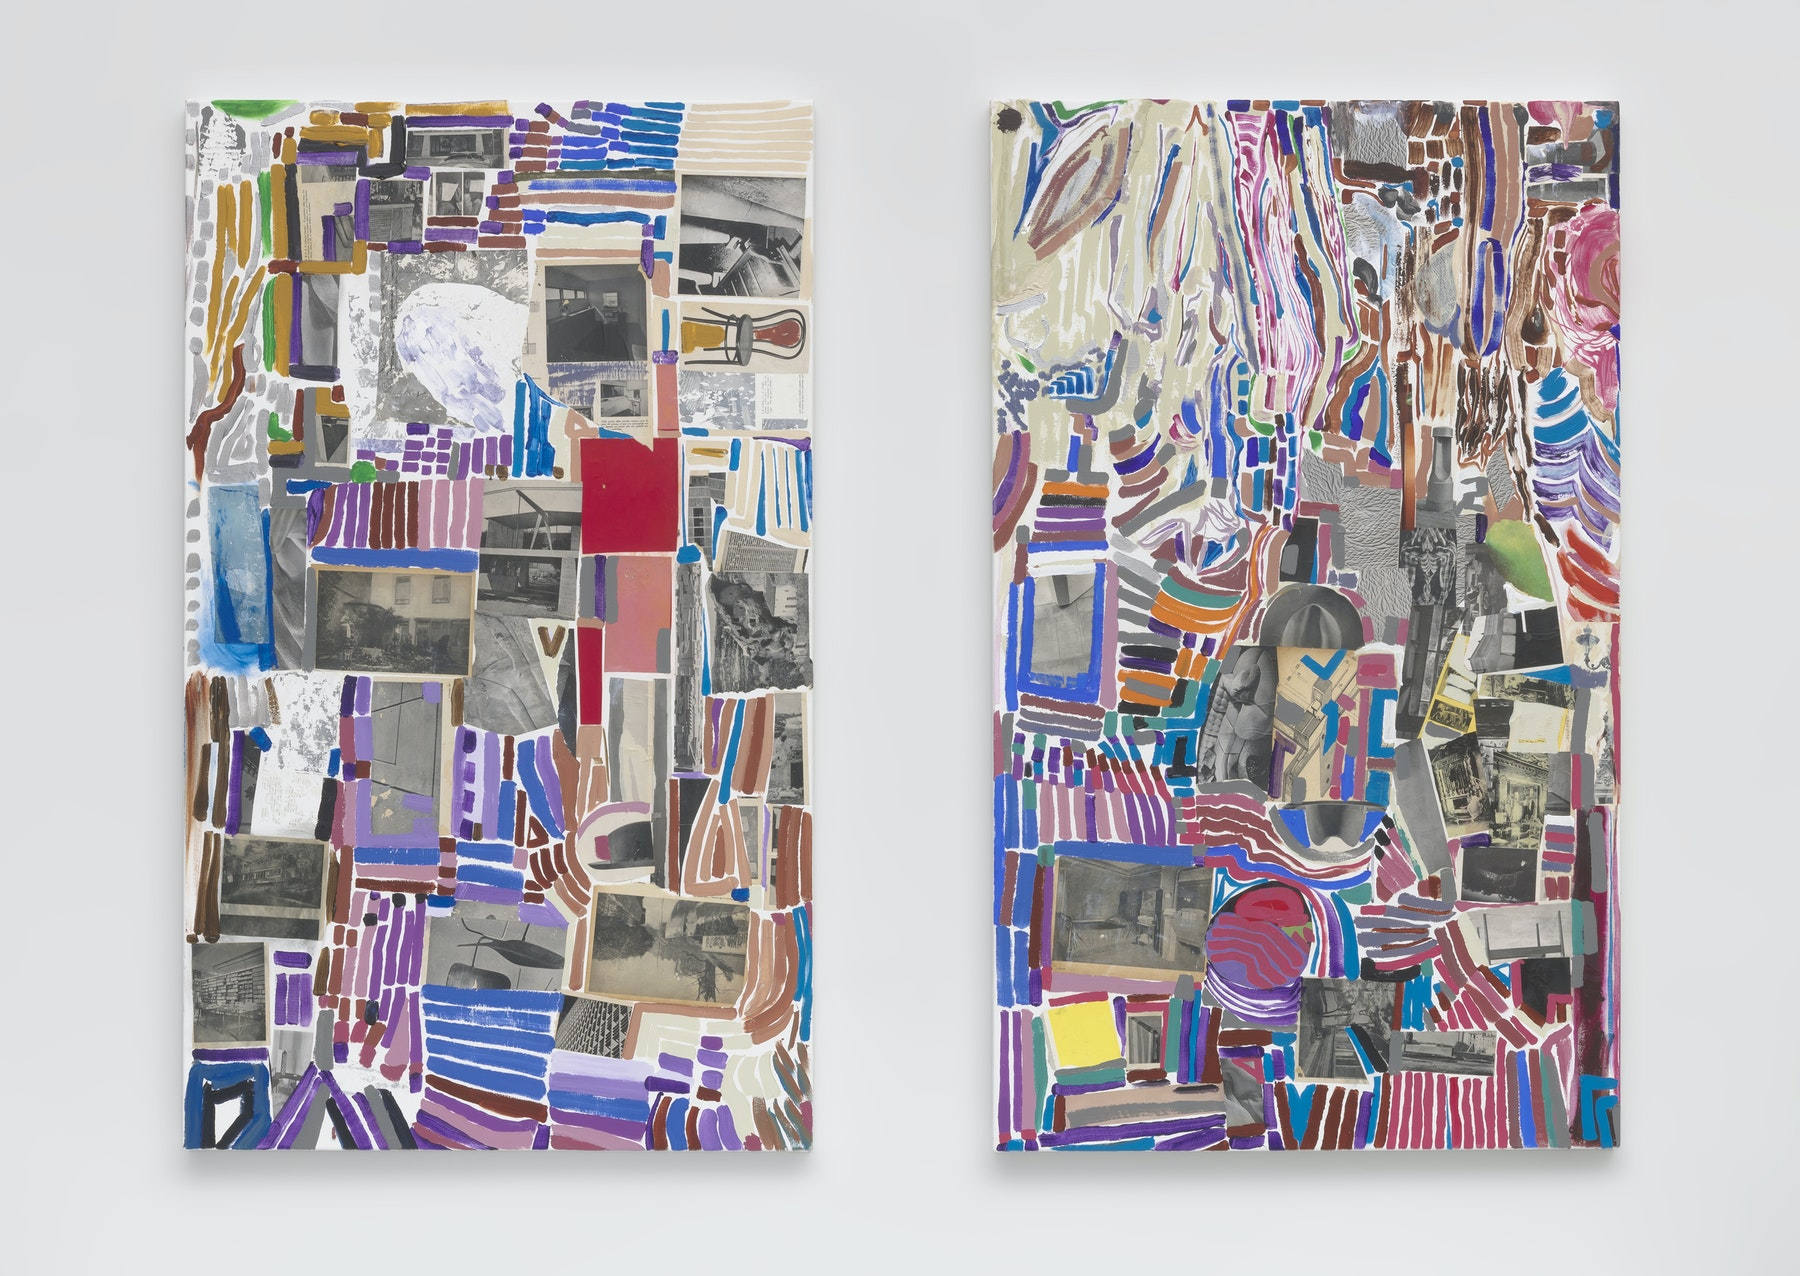 "Steve Roden ""metal mettle metal mettle.,"" 2020 Acrylic with paper collage 60 x 36"" [HxW] (152.4 x 91.44 cm) each Inventory #ROD674 Courtesy of the artist and Vielmetter Los Angeles Photo credit: Robert Wedemeyer Signed on back"